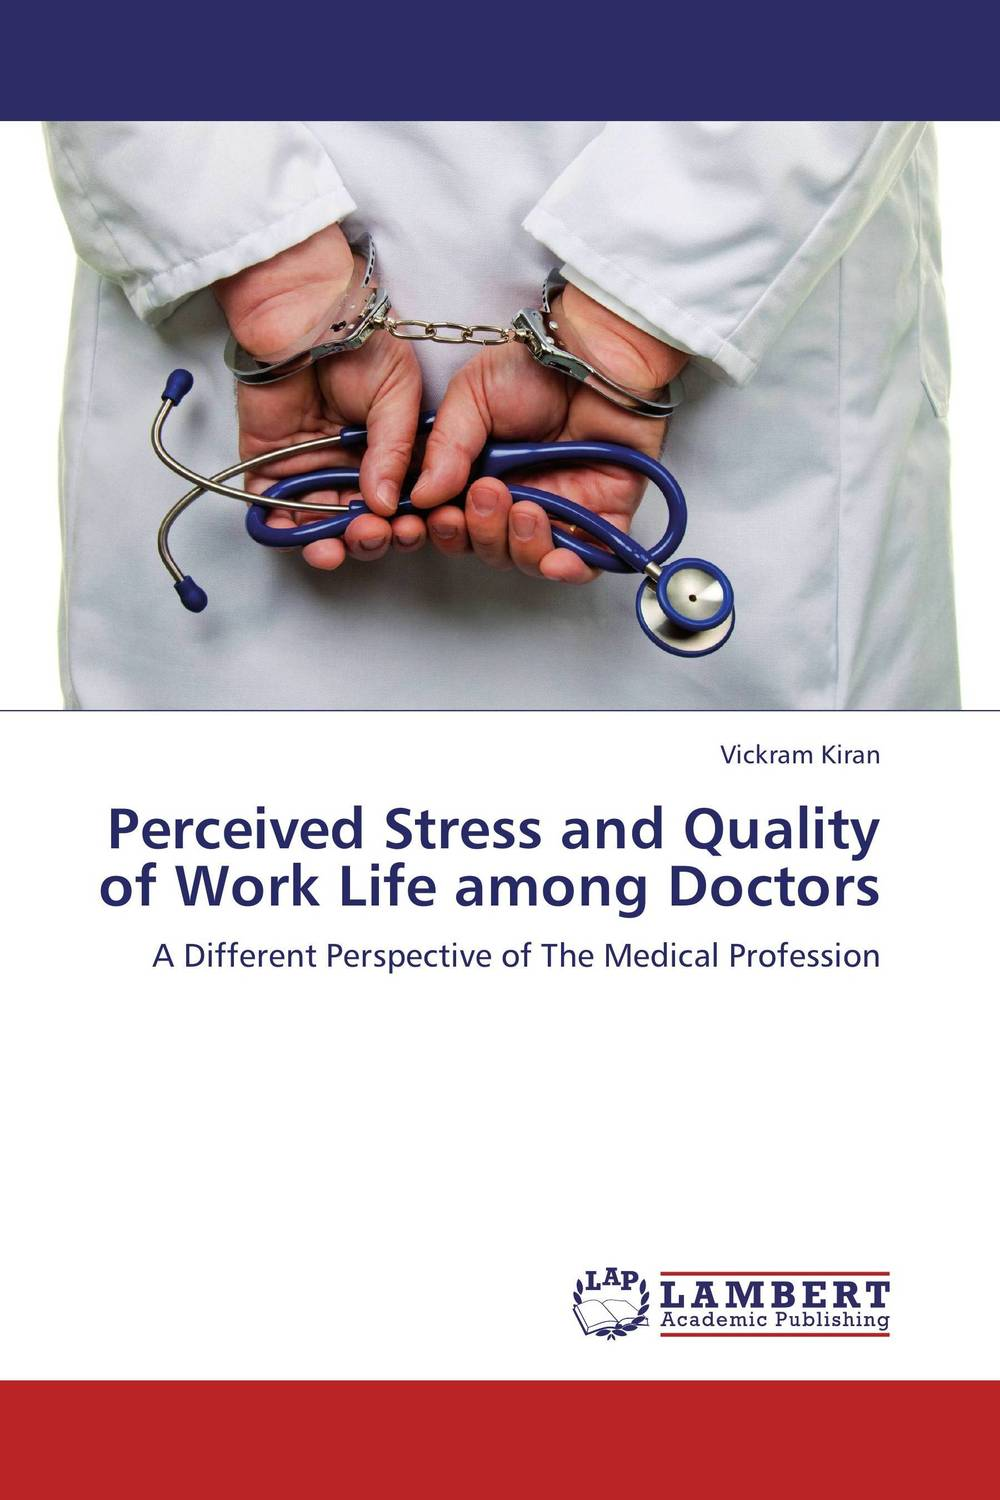 Perceived Stress and Quality of Work Life among Doctors sadiq sagheer job stress role conflict work life balance impacts on sales personnel